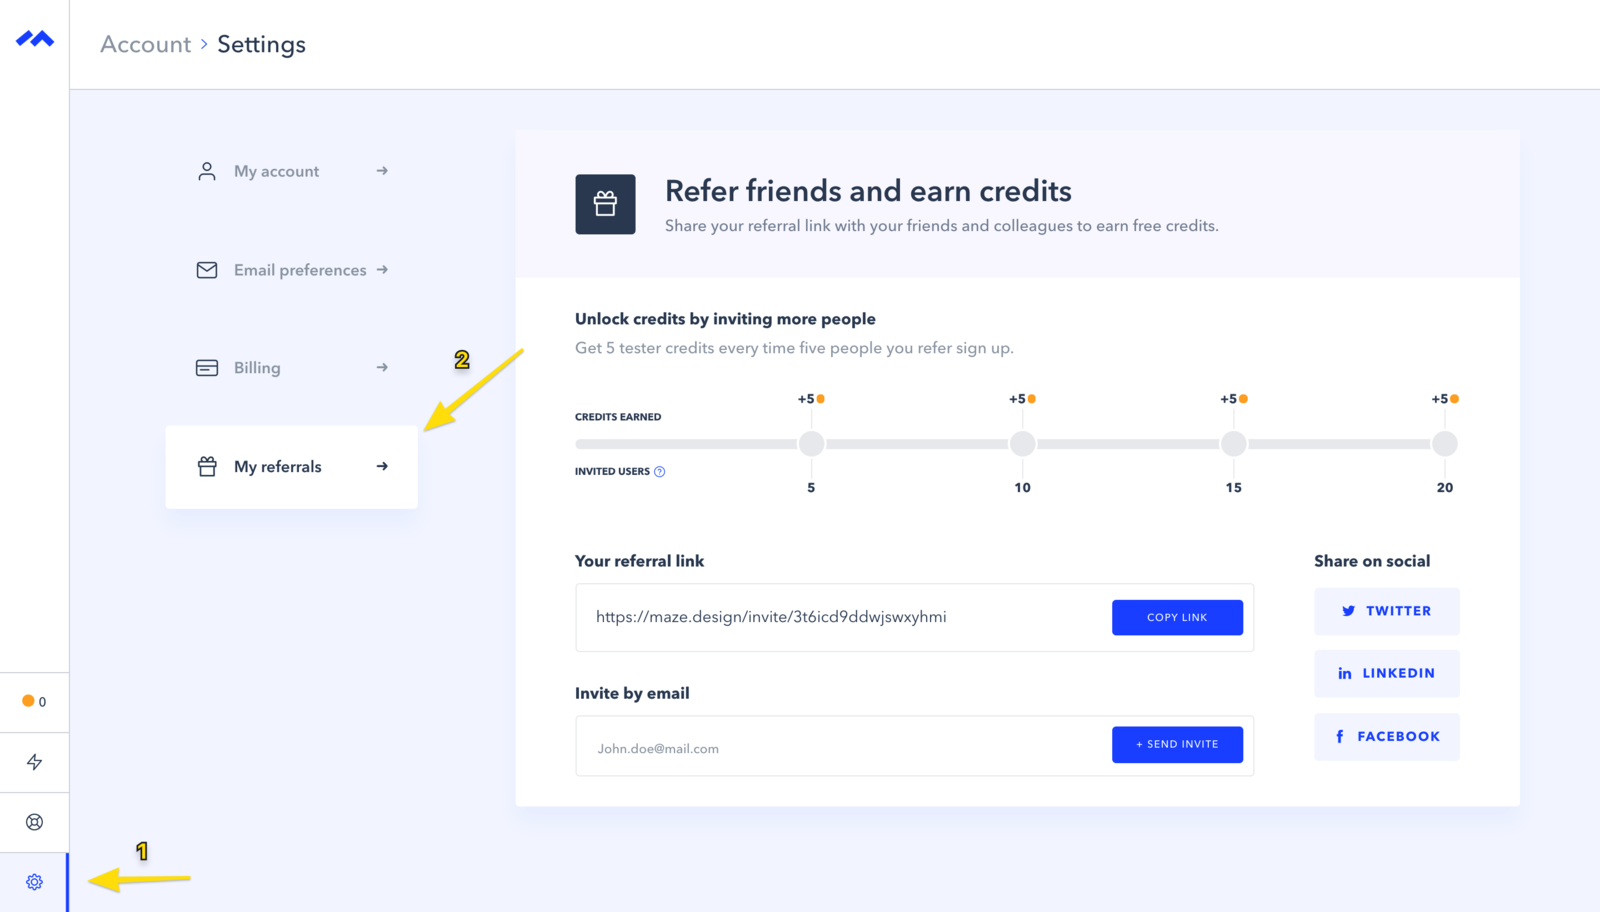 Your referral link lives here